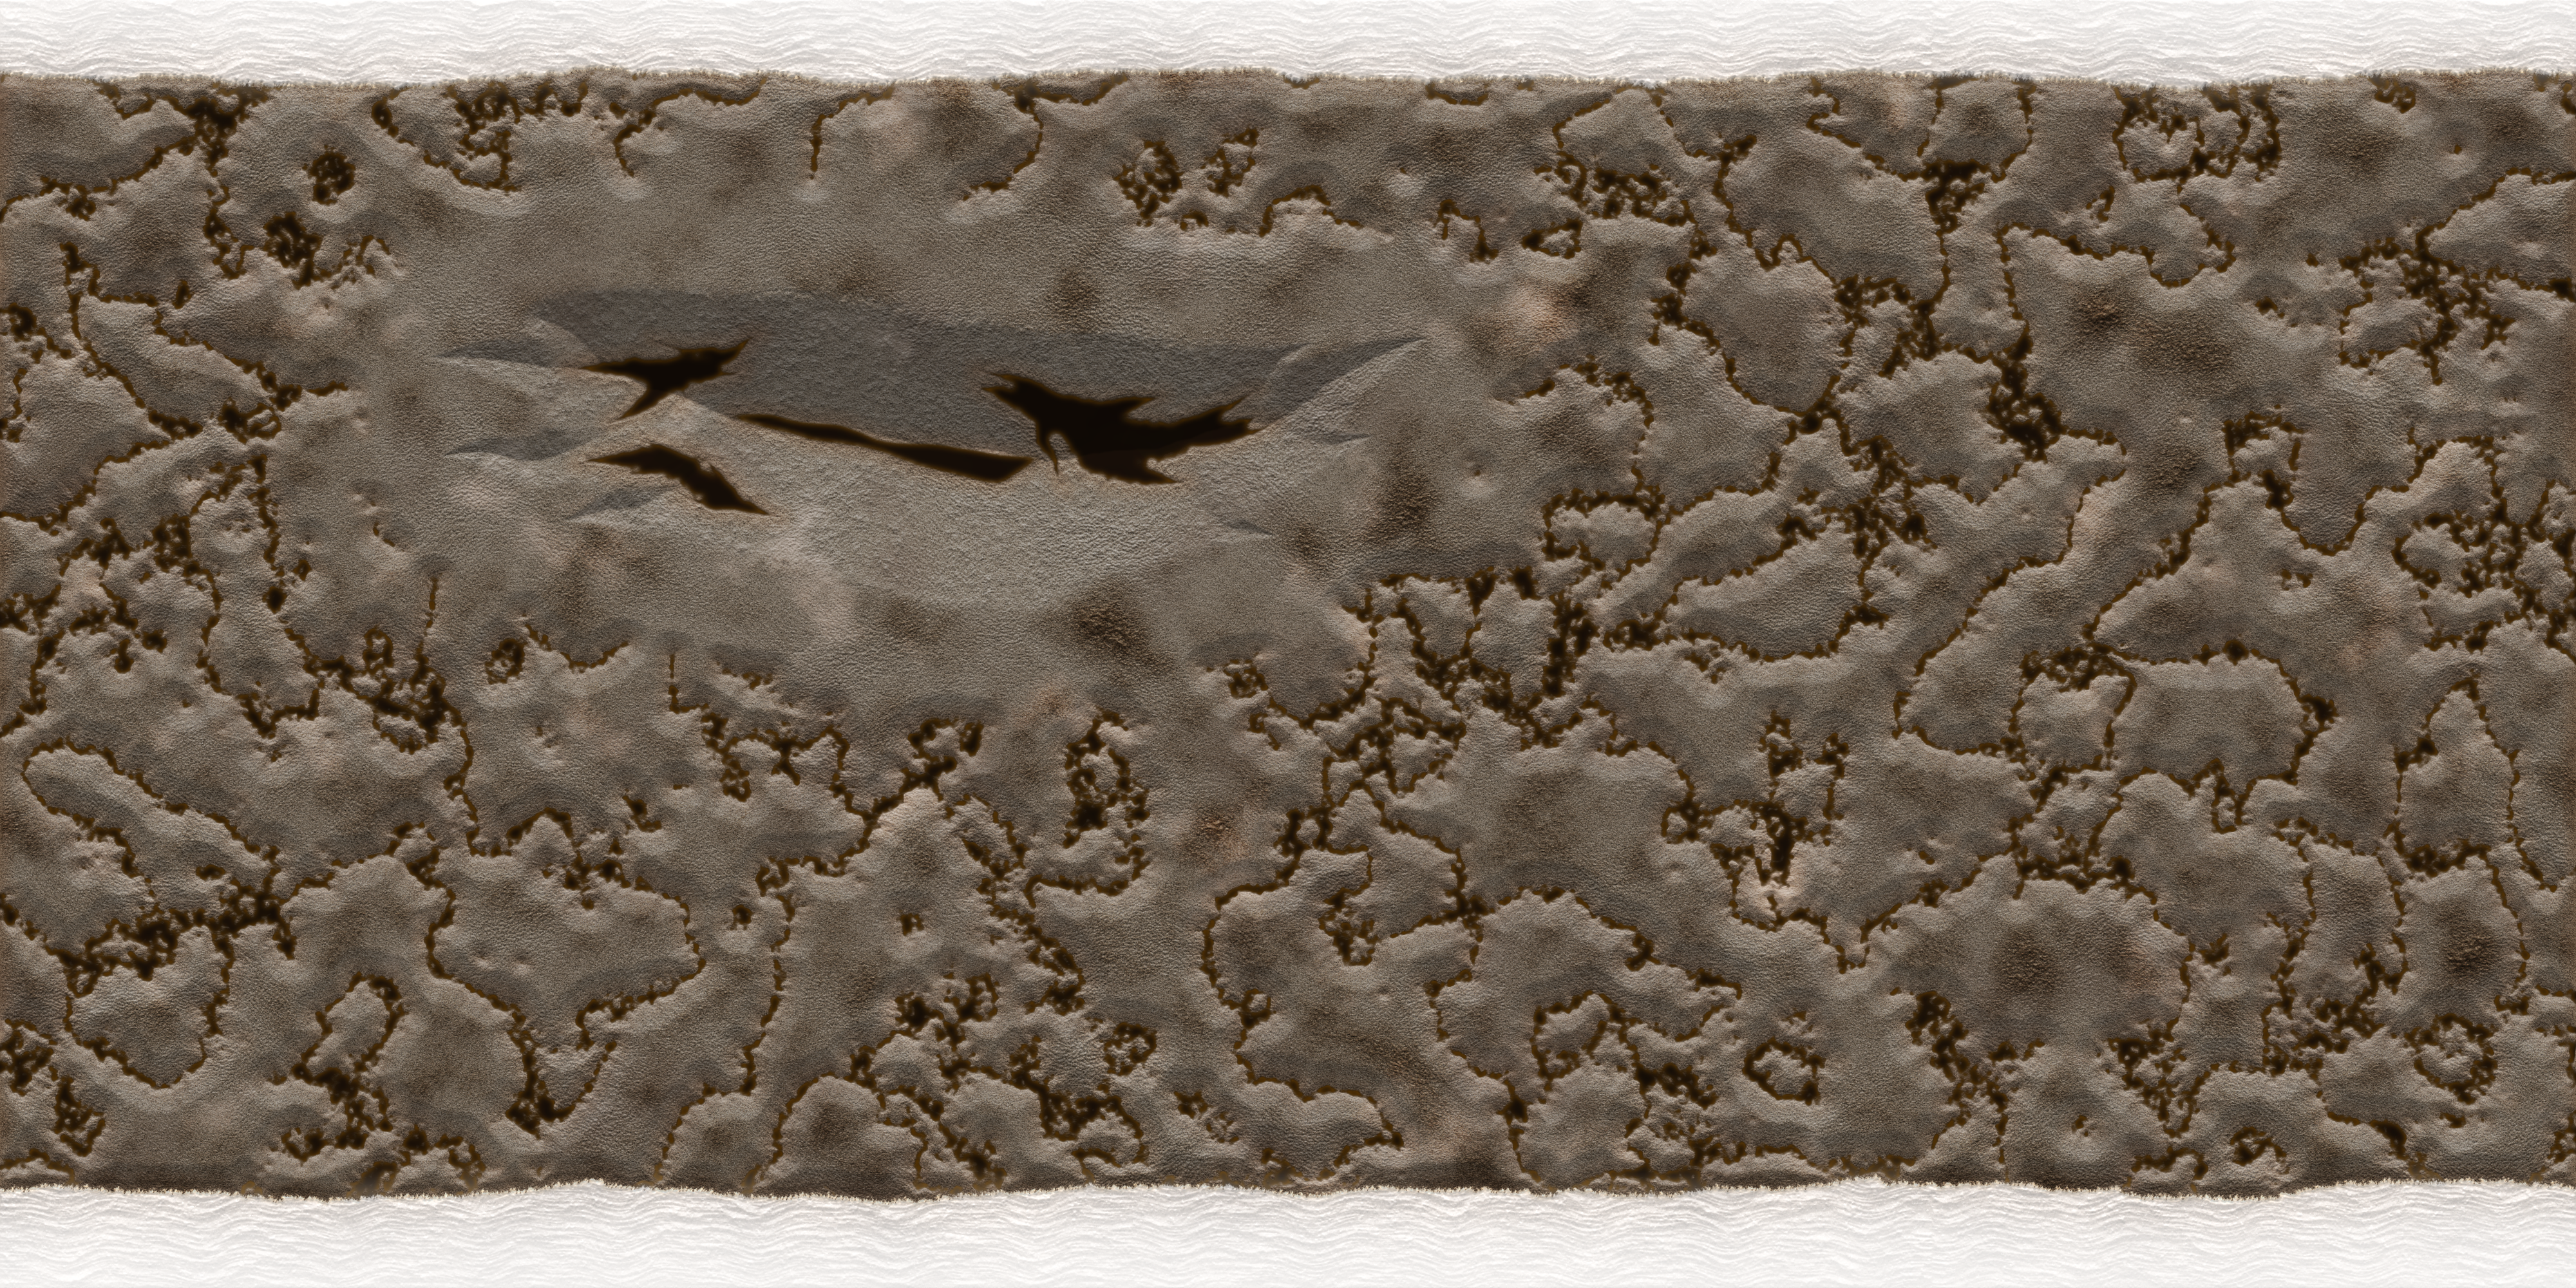 destry_surface_by_samio85-d7auise.png